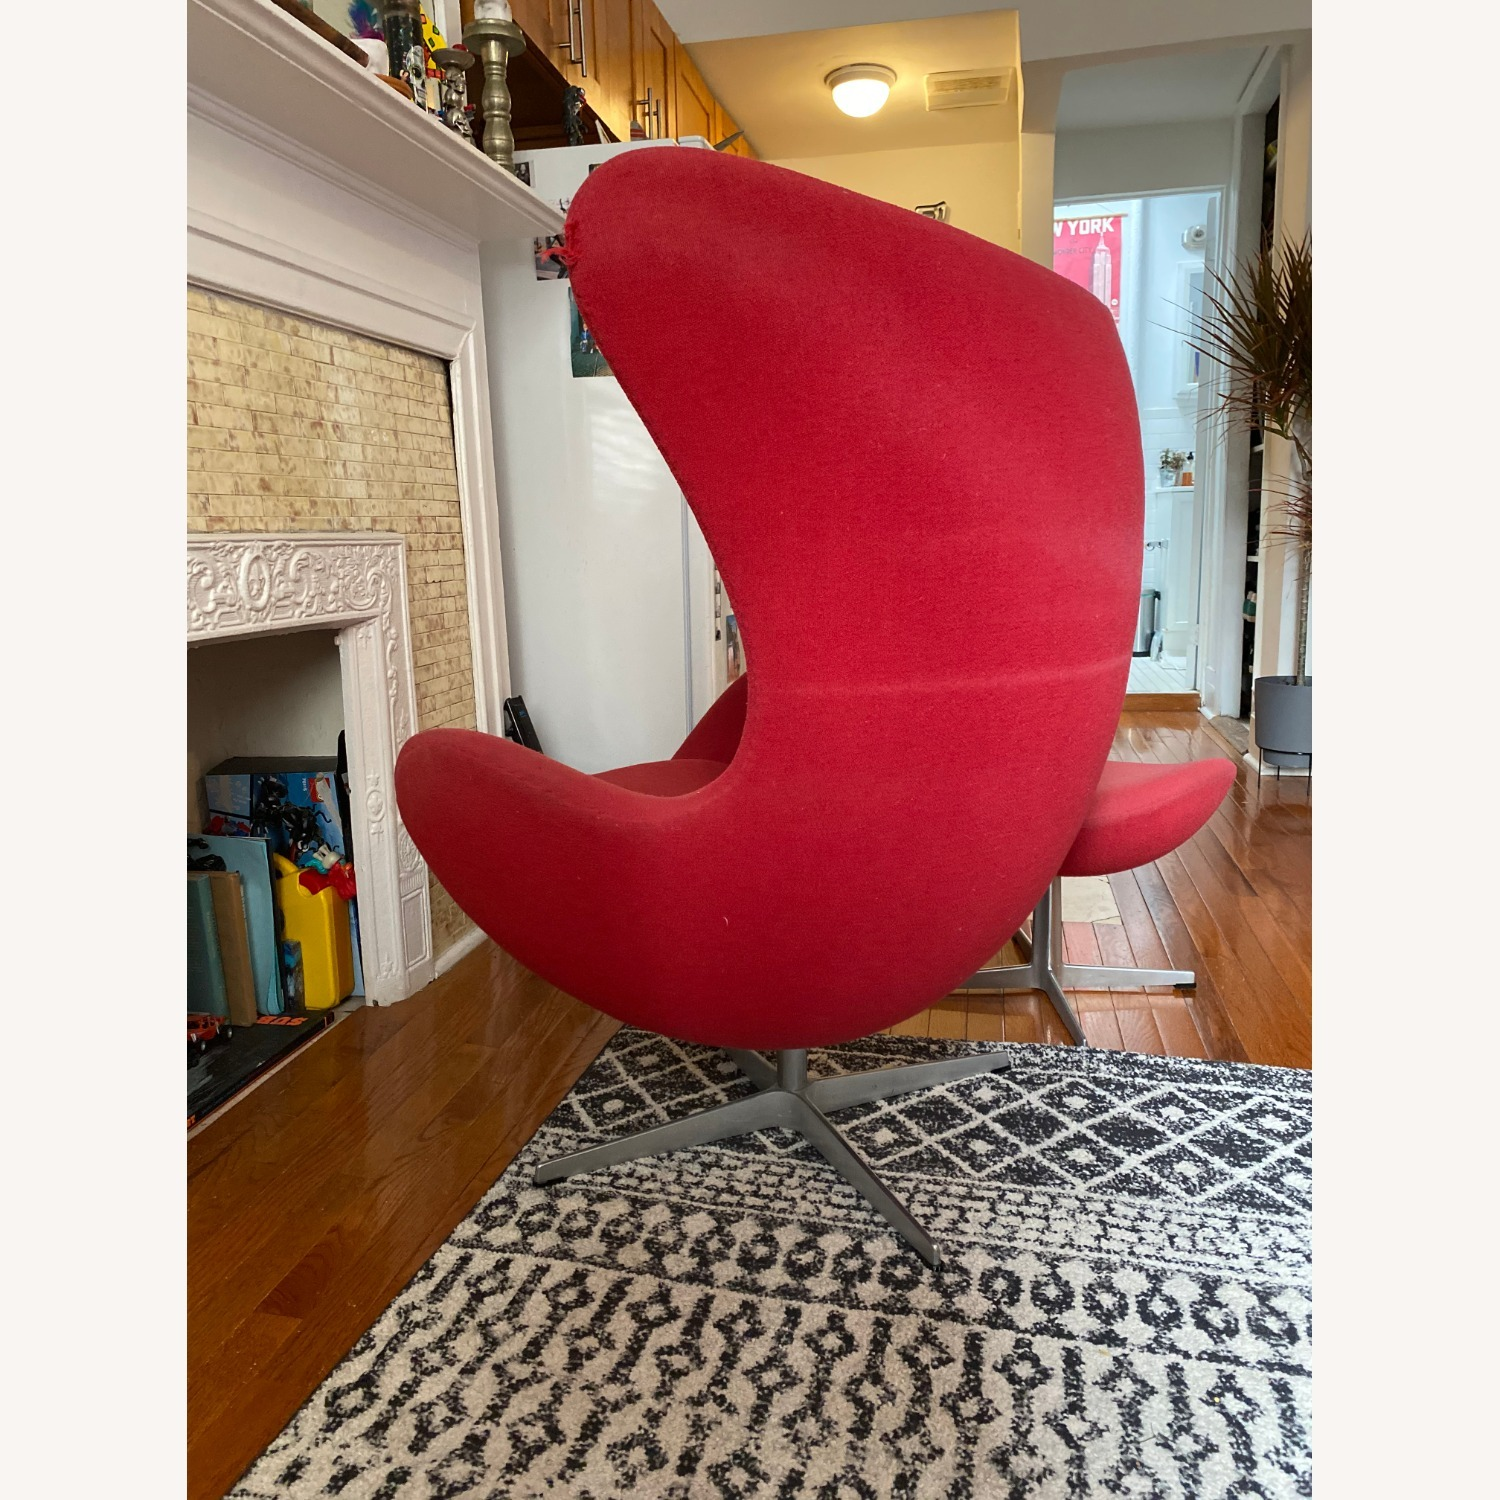 Fritz Hanson Egg Chair and footstool - image-9